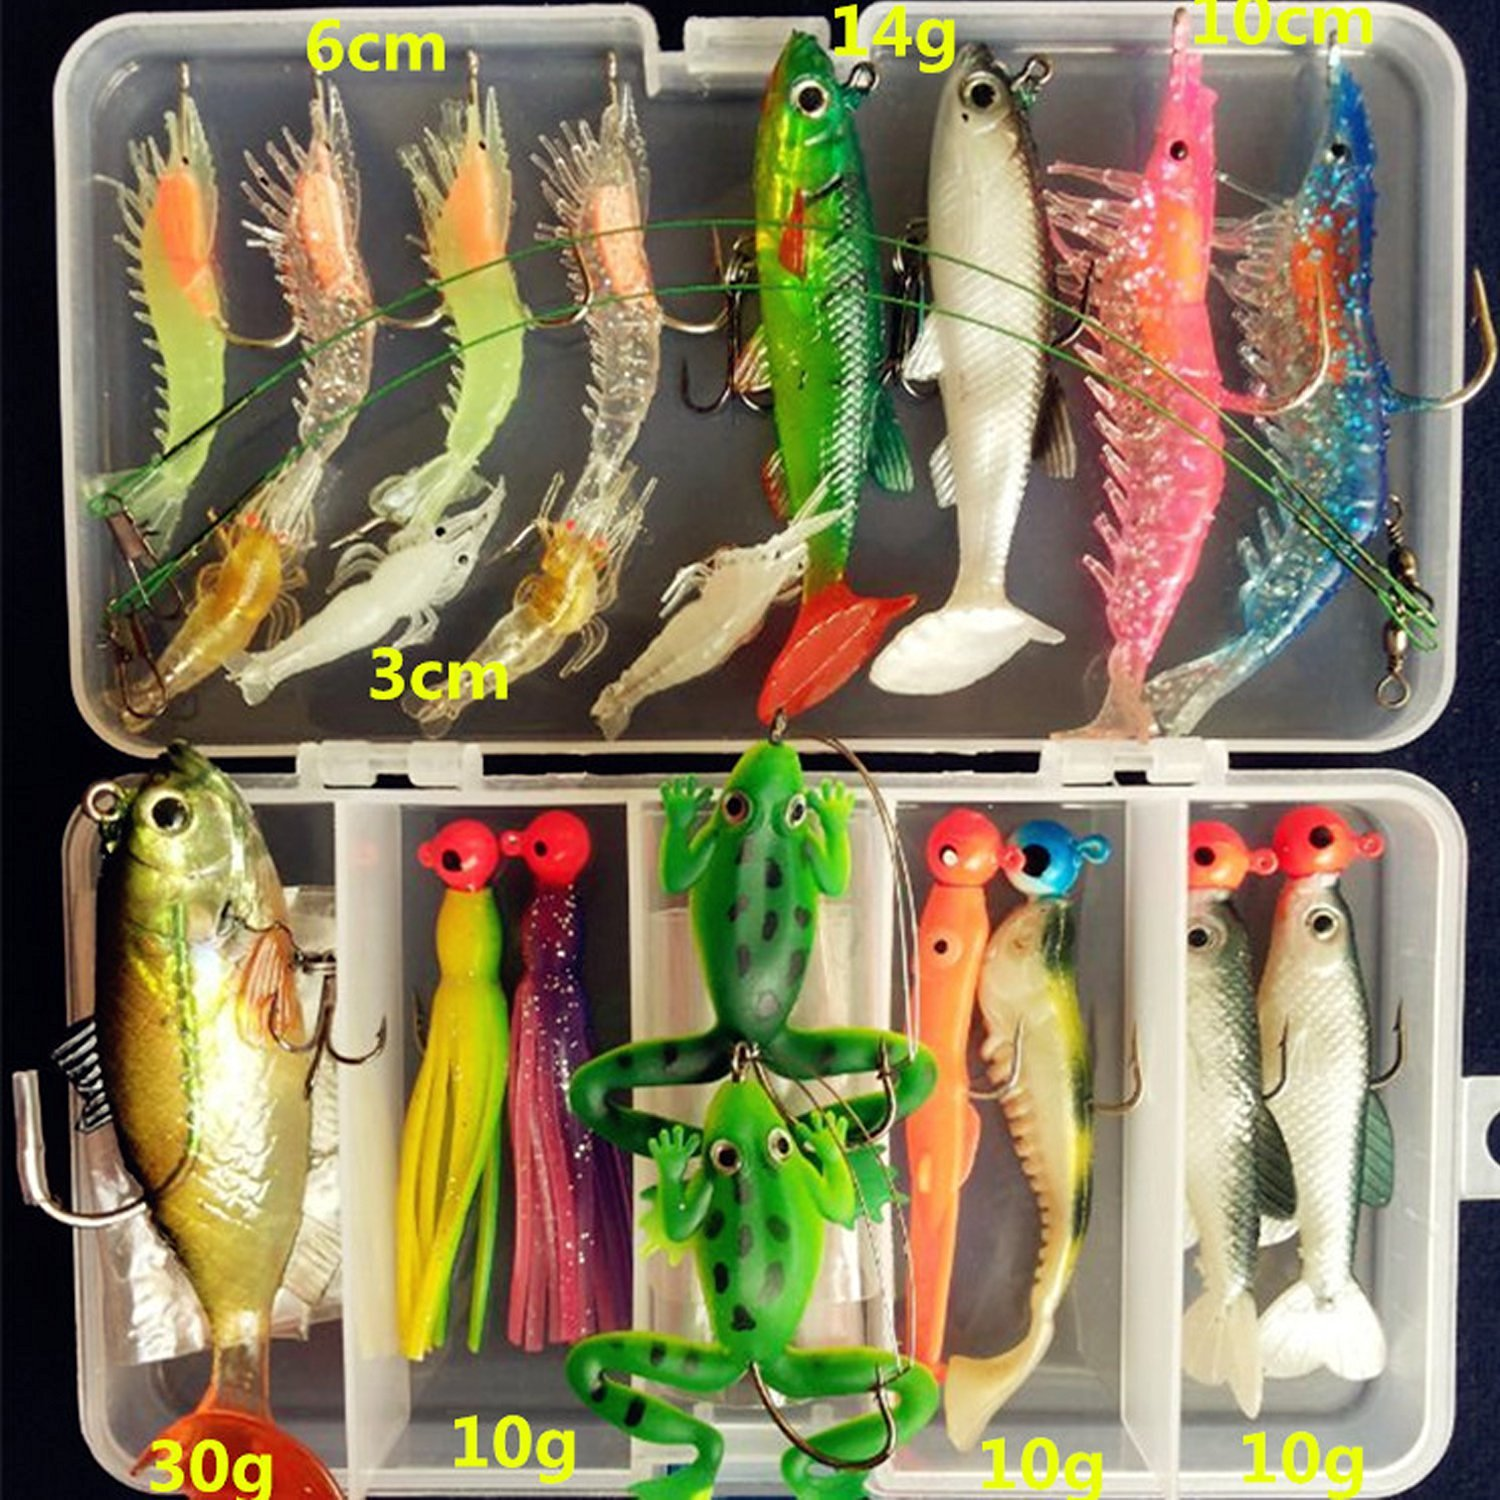 Buy AGadget Soft Plastic Fishing Lures Kit Set Lots with